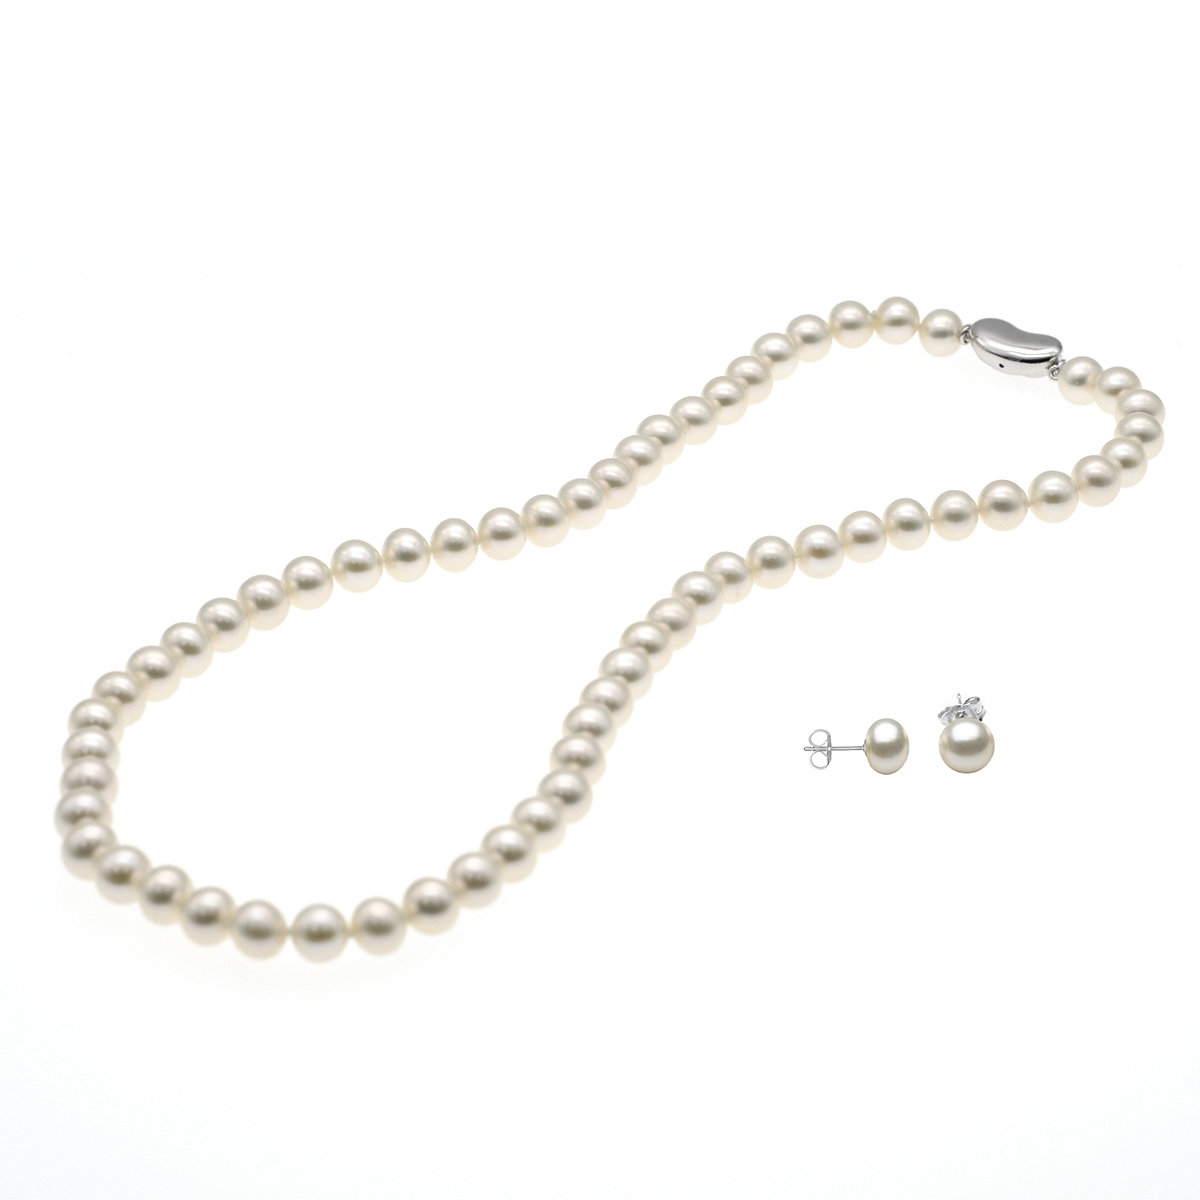 Premium Gift Set- Cultured fresh water pearl necklace with 925 silver earring